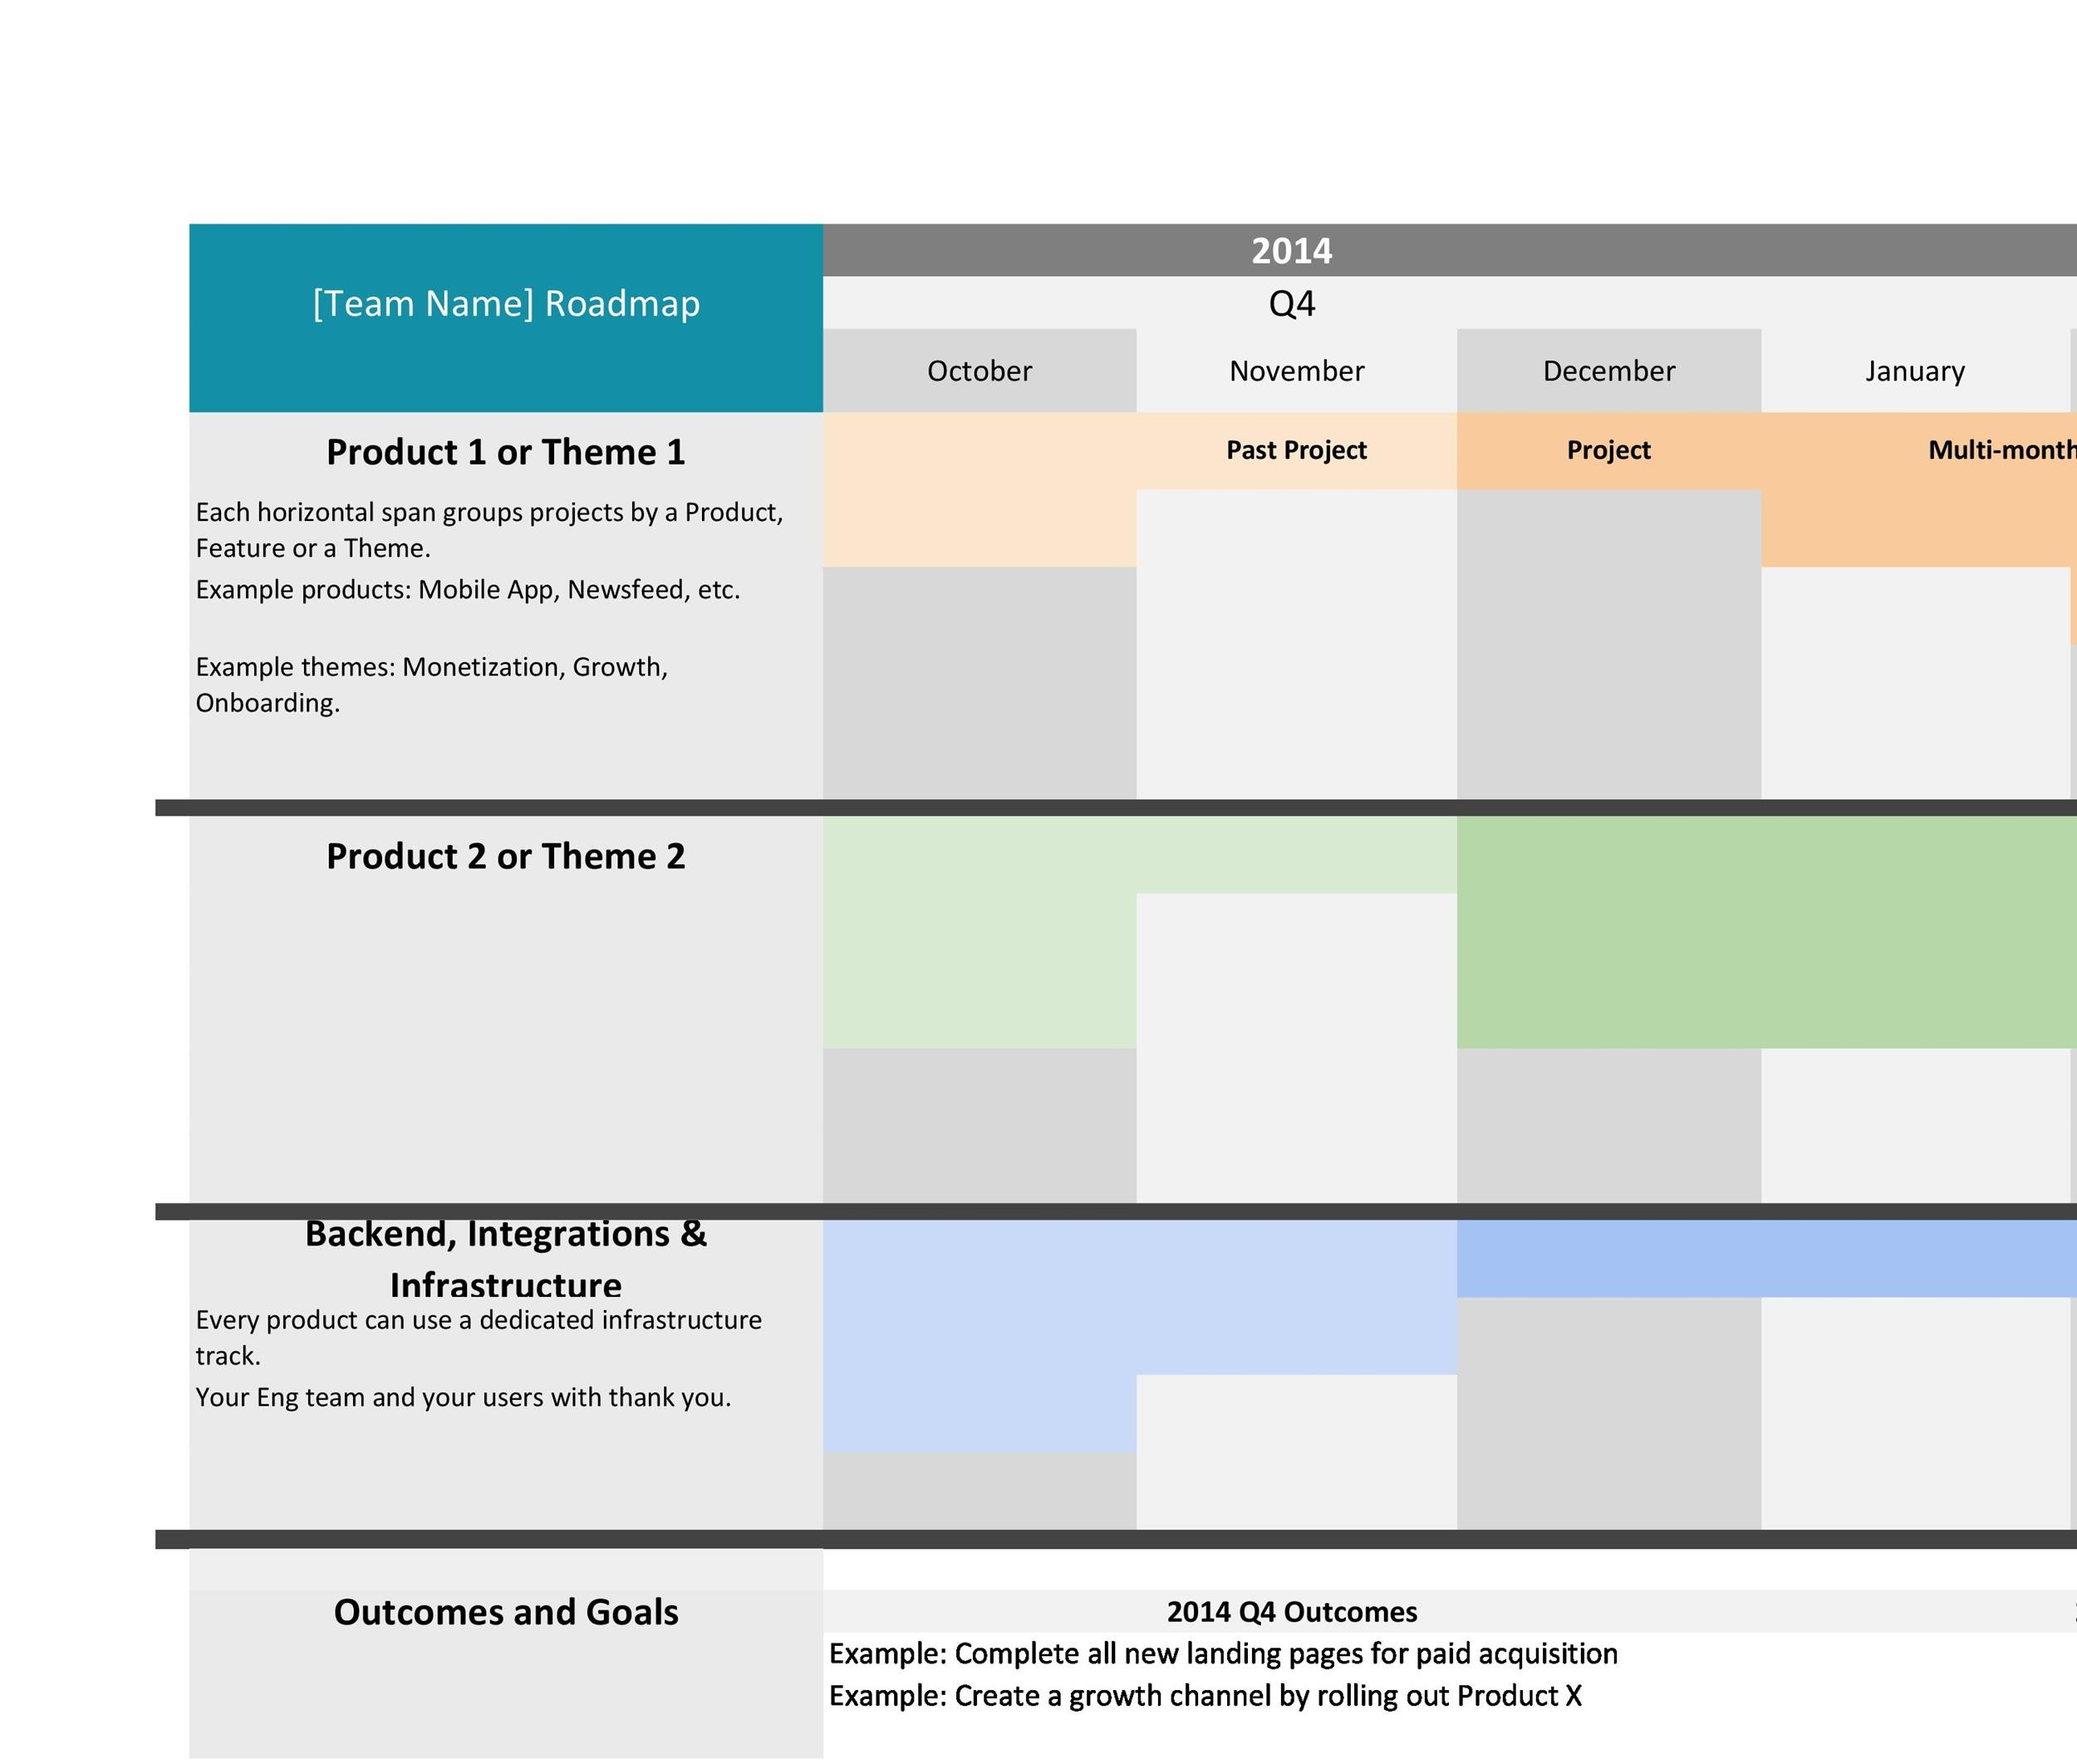 22 Visual Product Roadmap Templates & Tools ᐅ Template Lab on sample forum template, sample program template, sample references template, sample design template, sample plan template, sample vision template, sample methodology template, sample faq template, sample workflow template, sample certification template, sample pricing template, sample manual template, sample training template, sample report template, sample policy template, sample facebook template, sample mission template, sample requirements template, sample gantt template, sample review template,